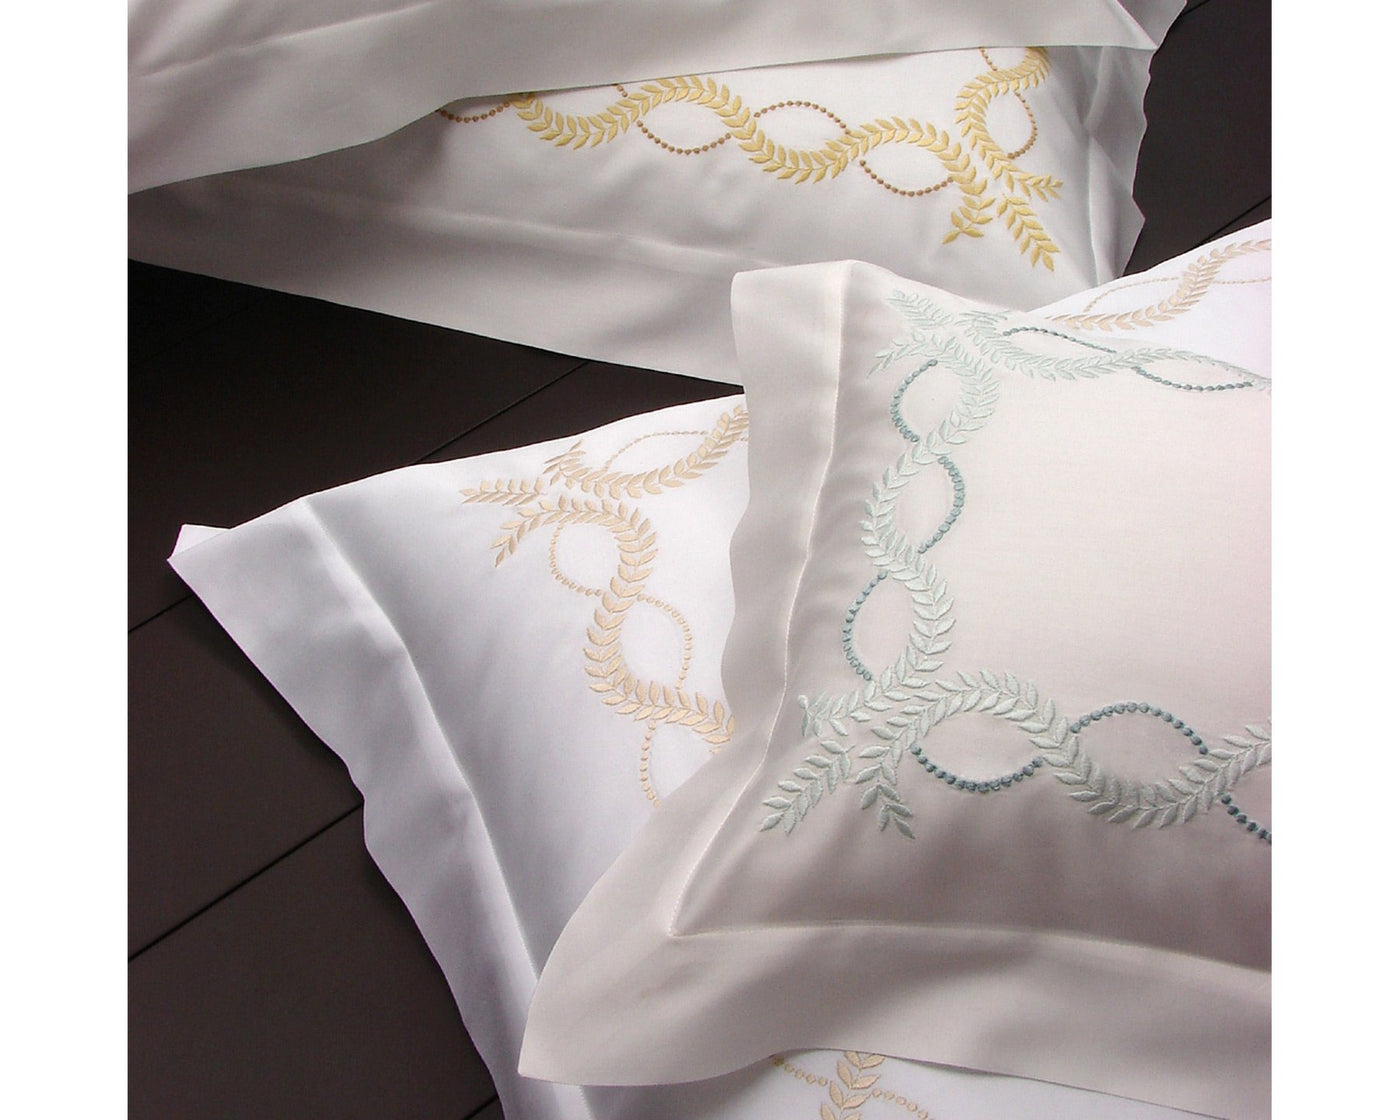 100% cotton Raso sateen with exquisite embroidery